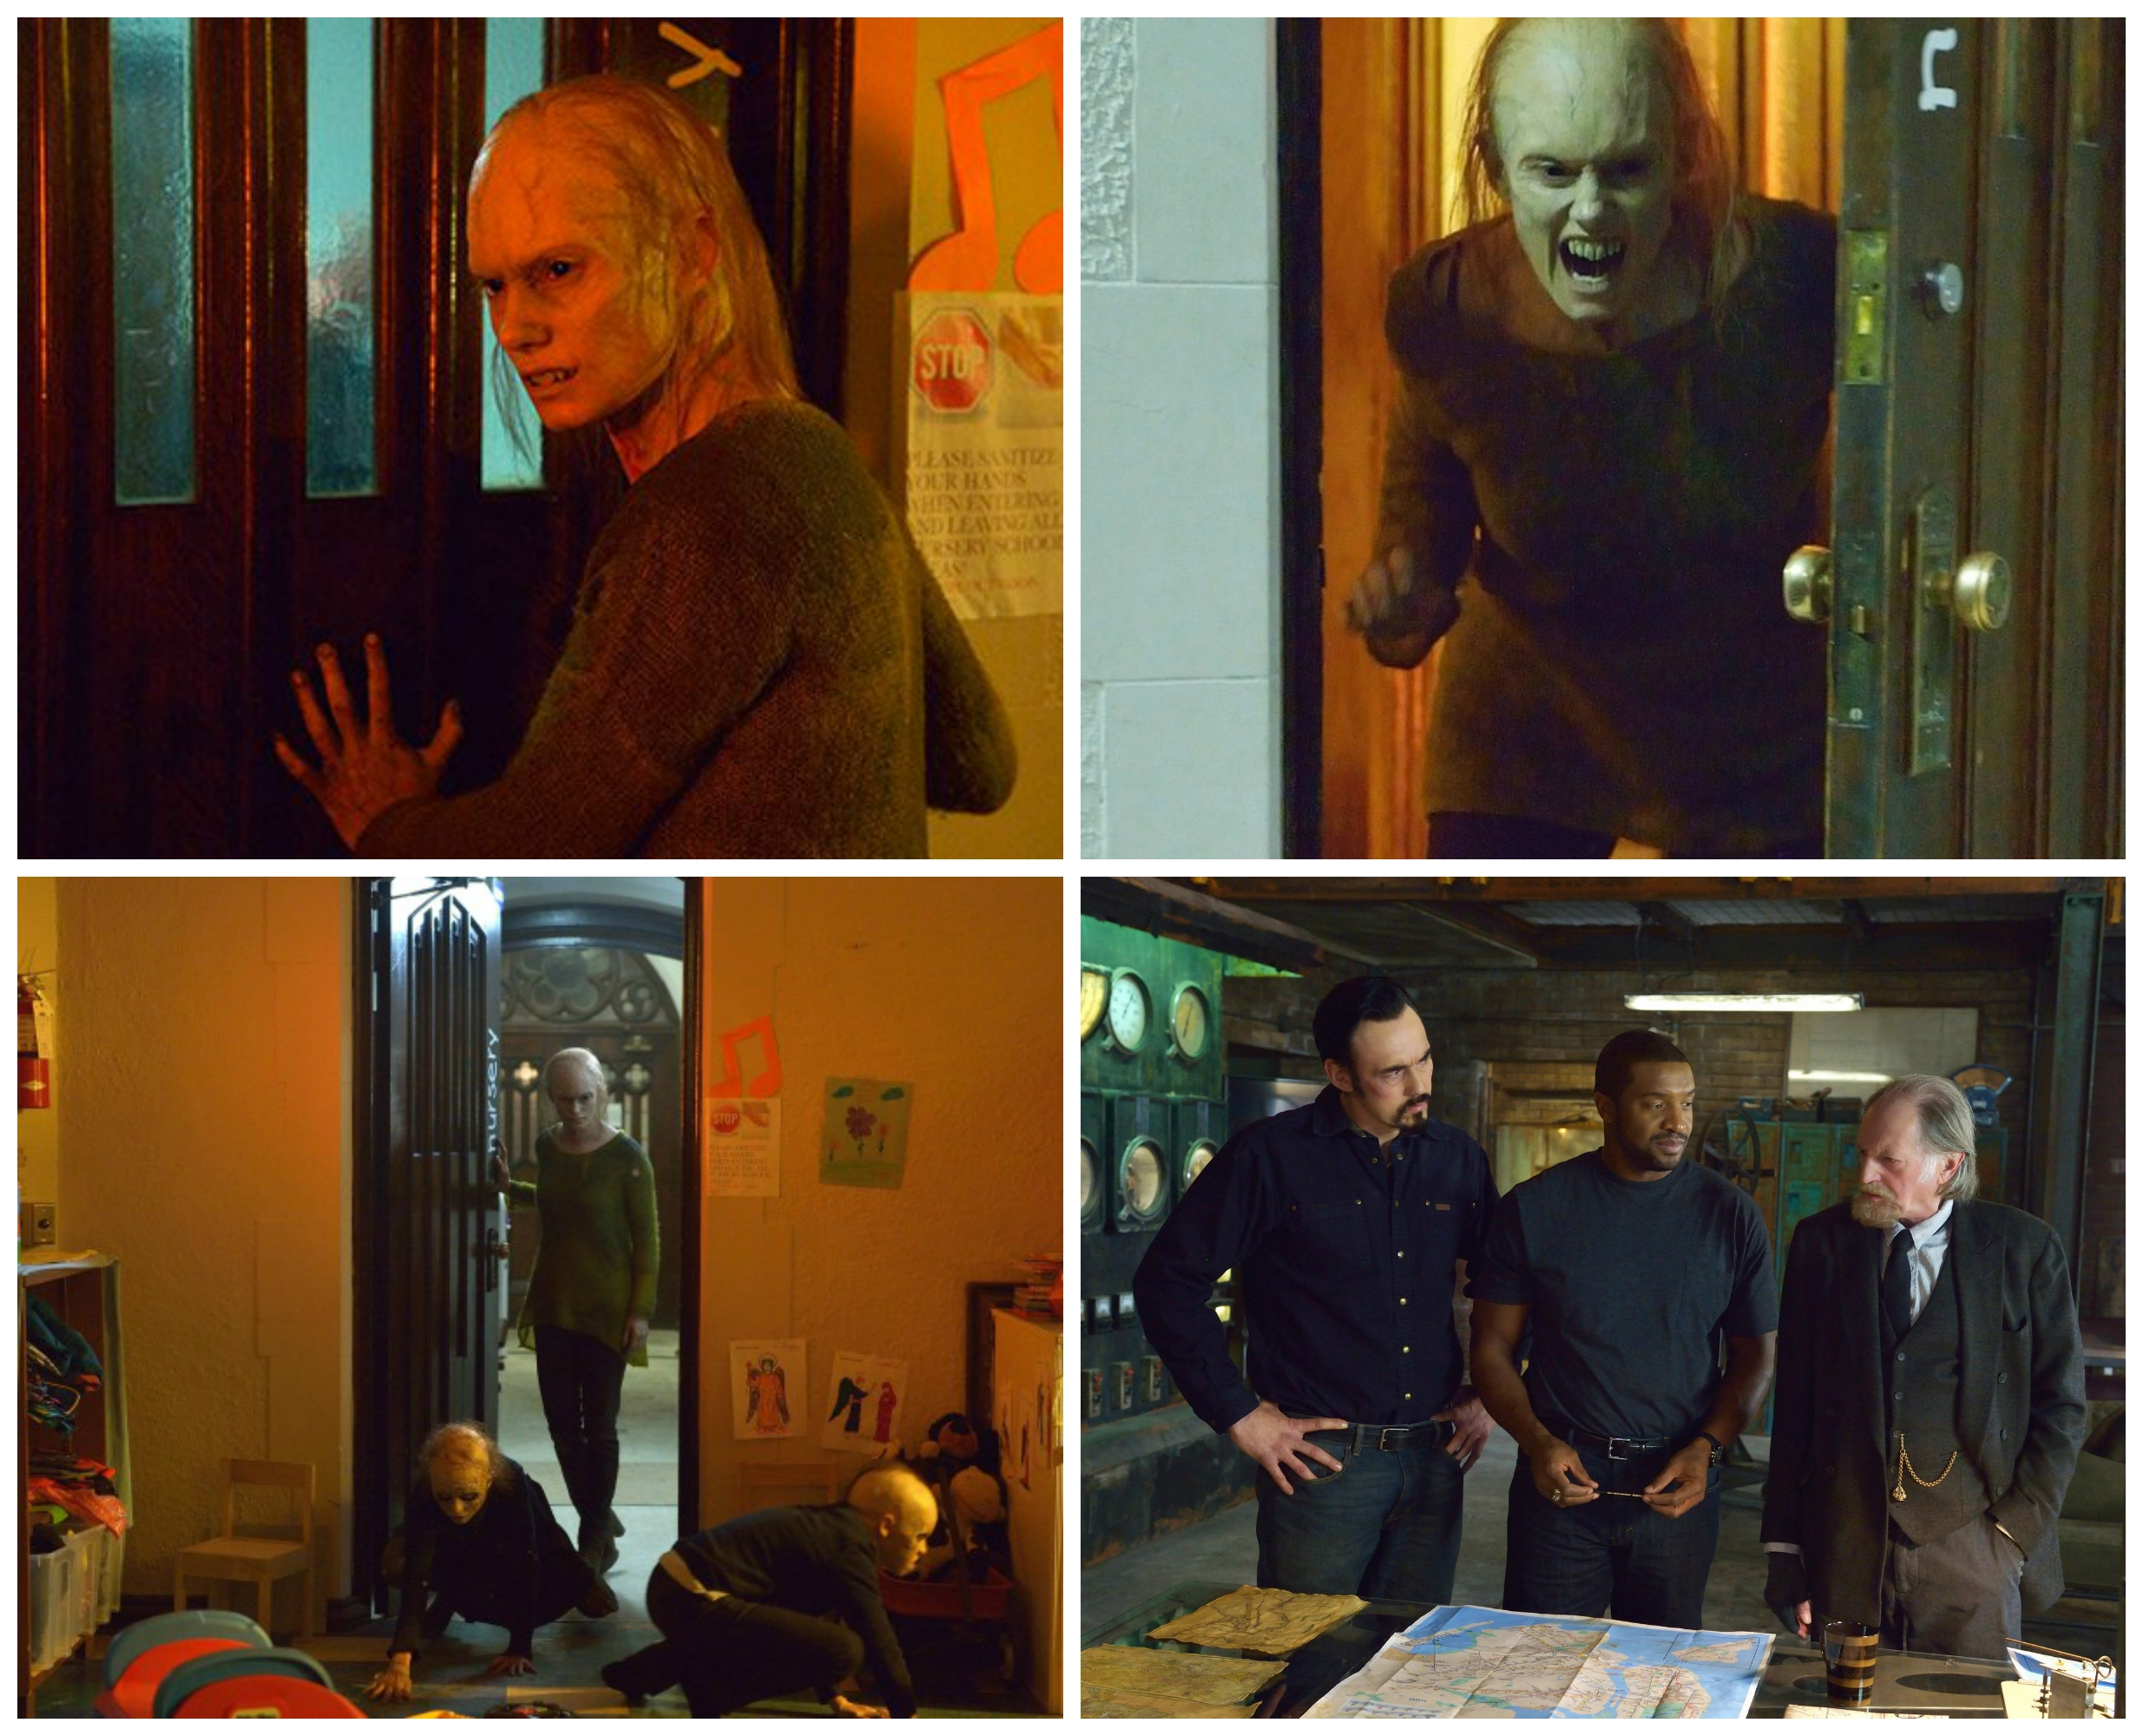 Episode 260: The Strain - S2E6 - Identity